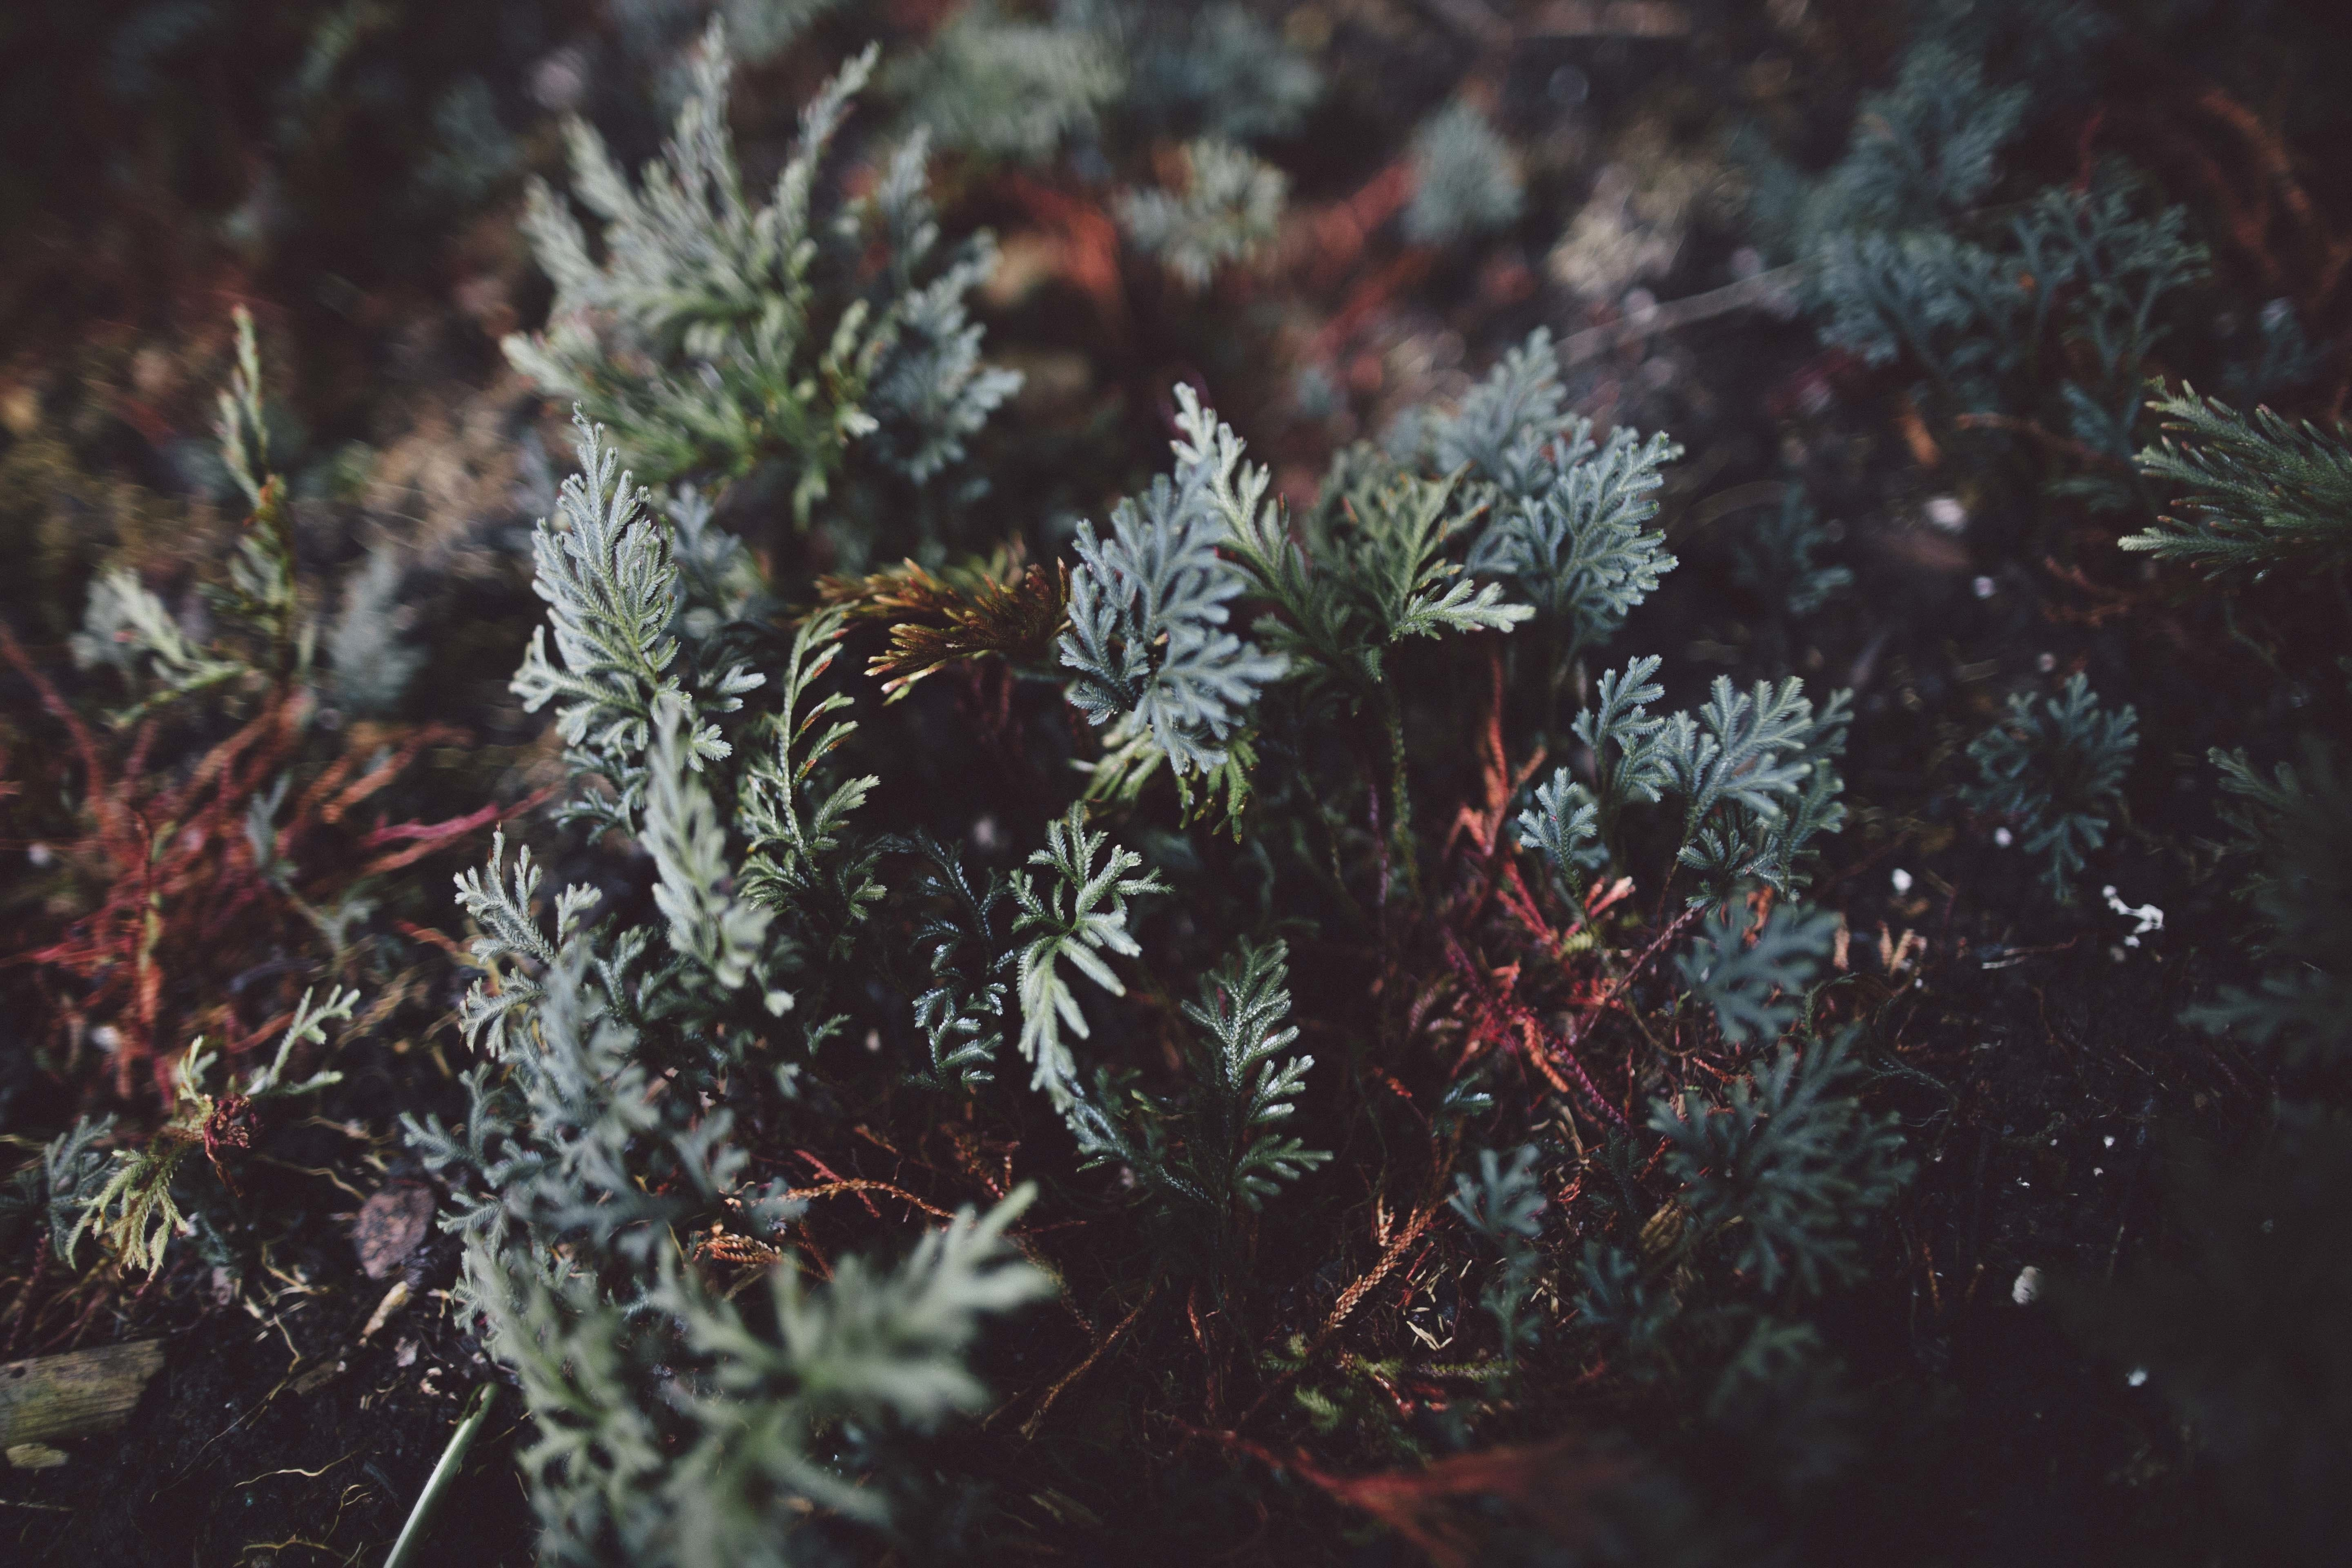 Free stock photo of nature, garden, plant, leaves